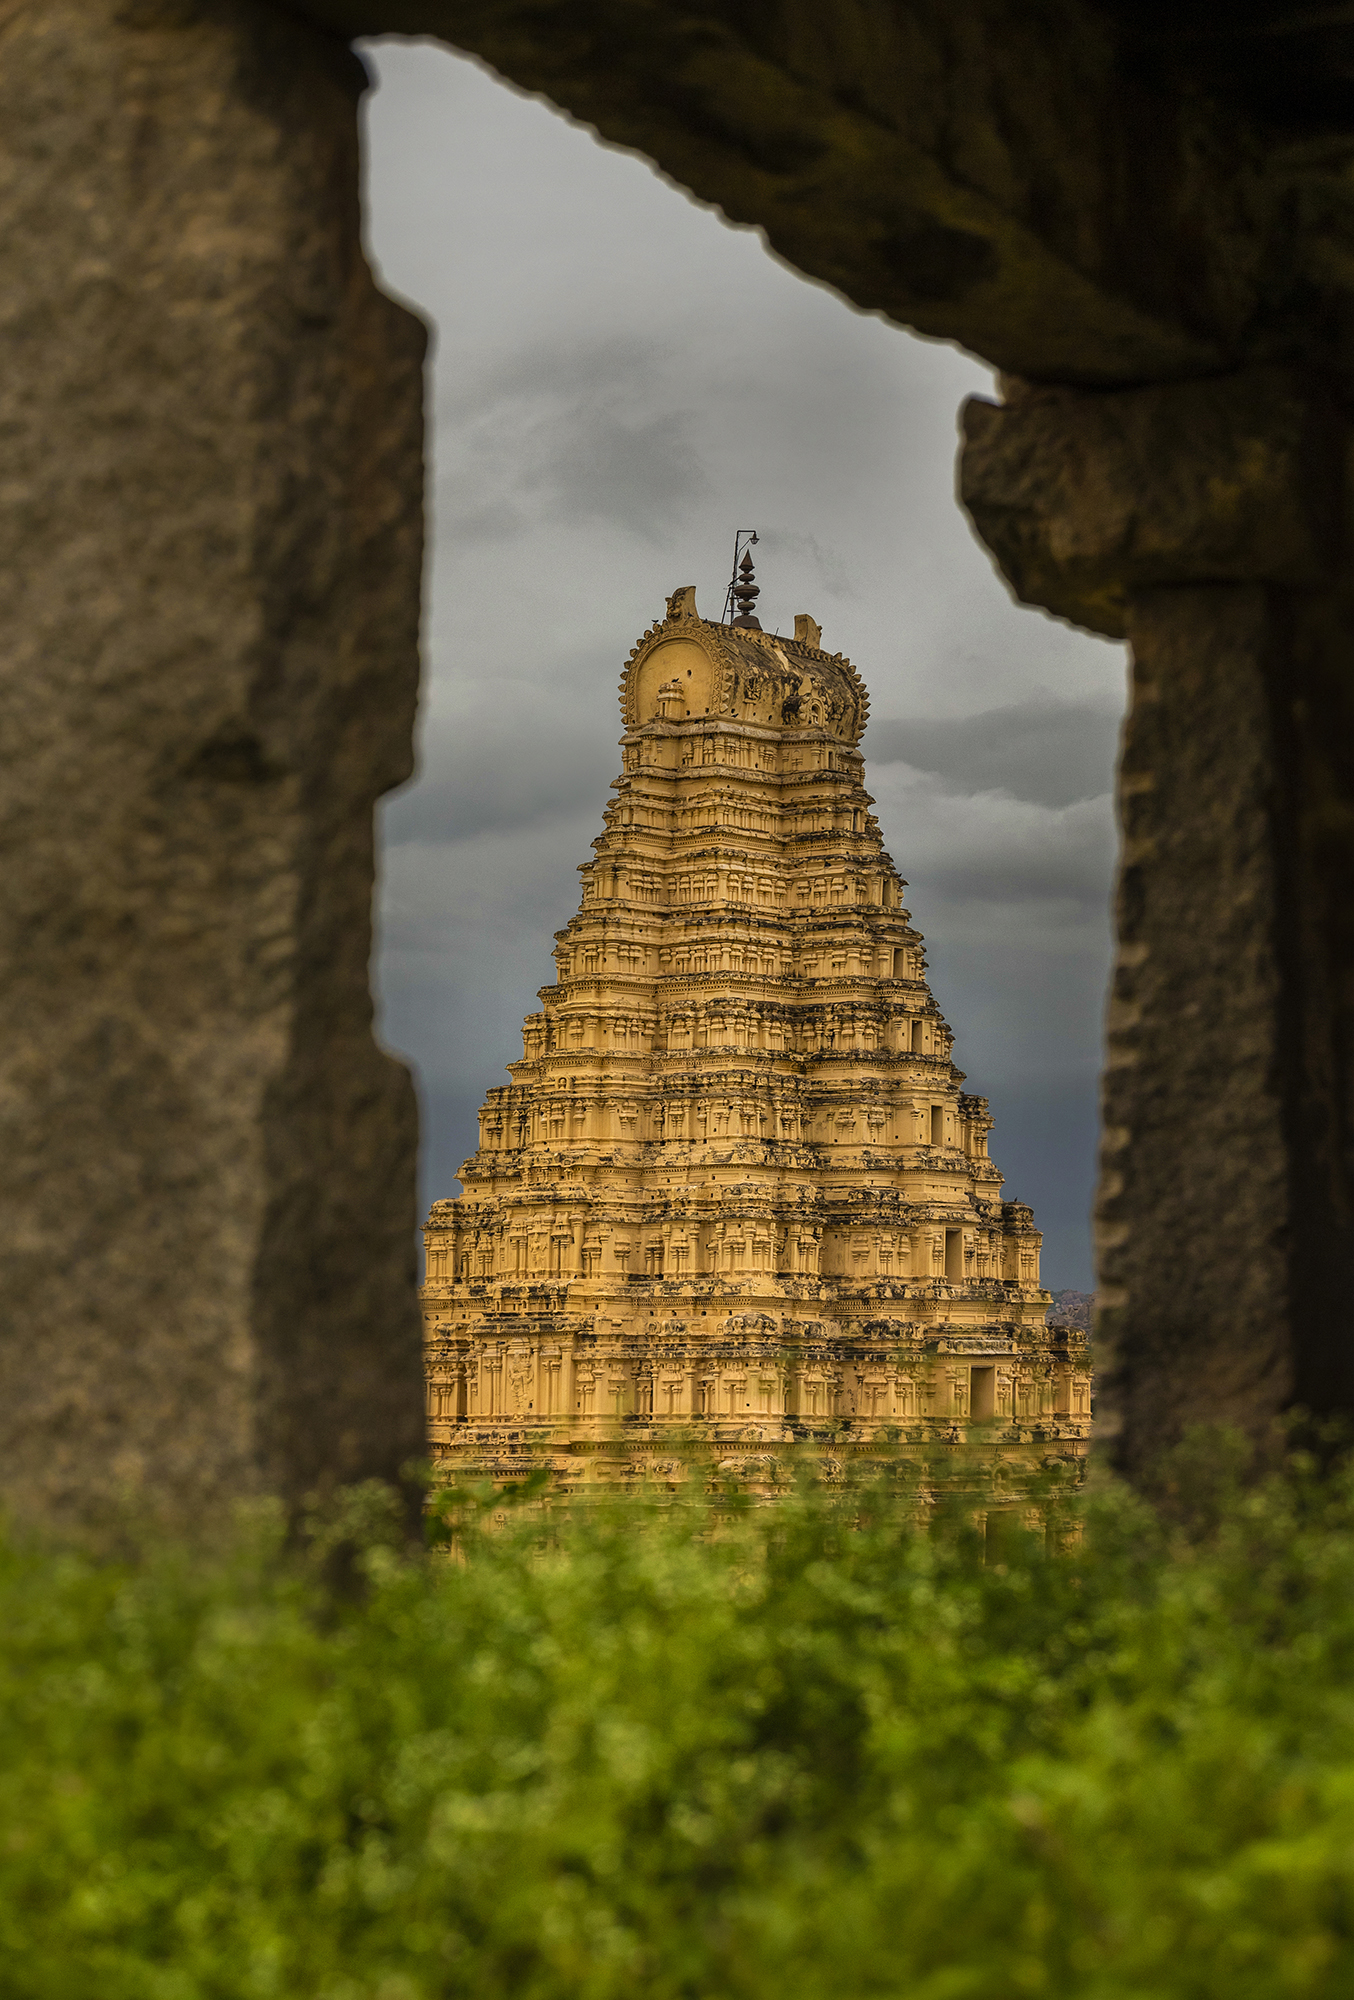 Taking unique perspective is always my favorite. A frame with in frame of Virupaksha Temple from Land of Ruins, Hampi